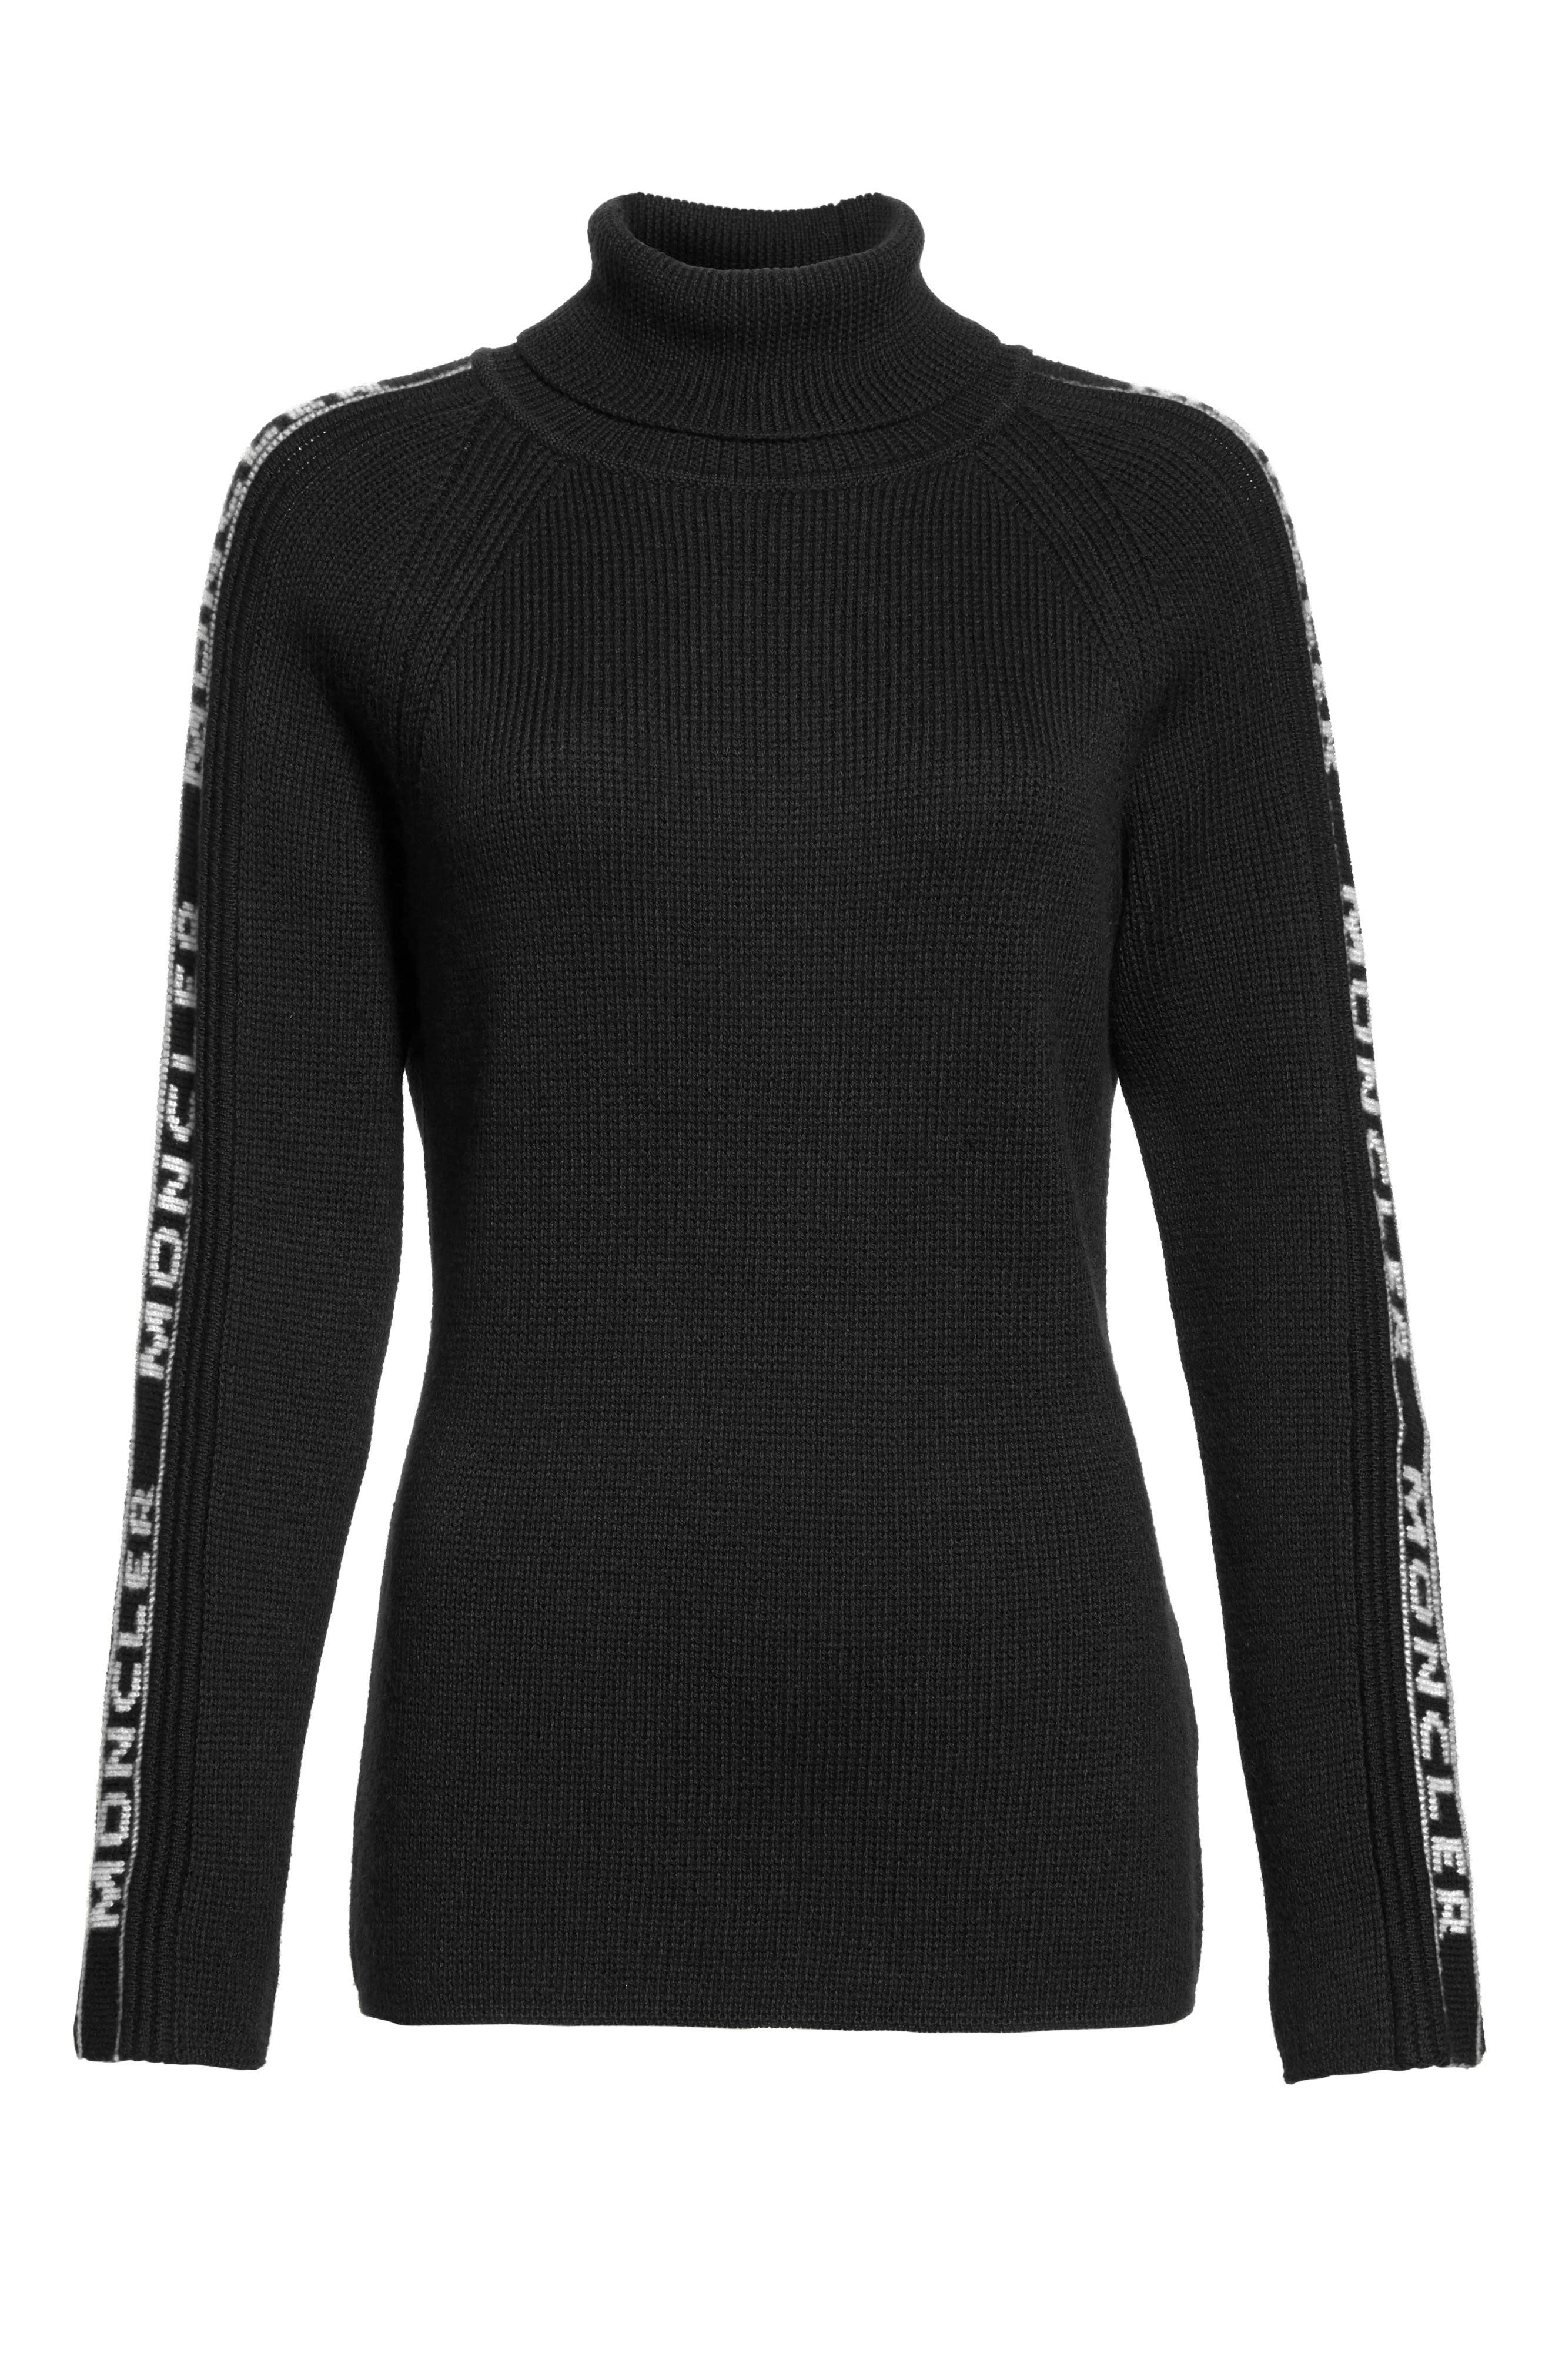 Ciclista Tricot Wool Sweater,                             Alternate thumbnail 5, color,                             Black With White